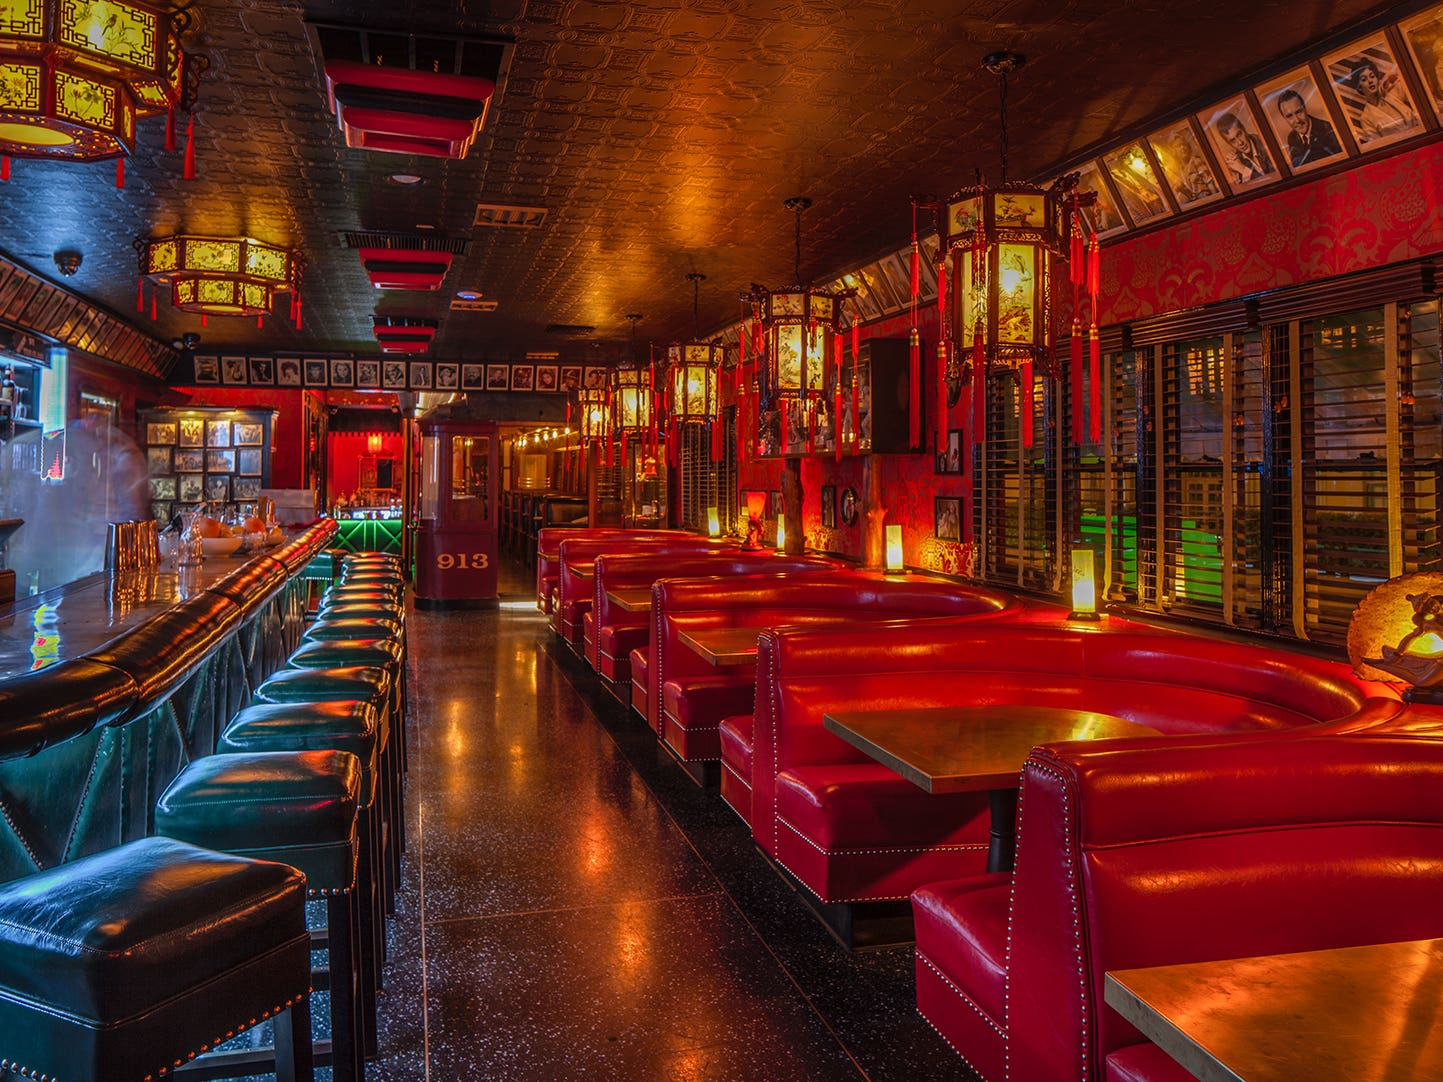 Main Room of the Formosa Cafe at night